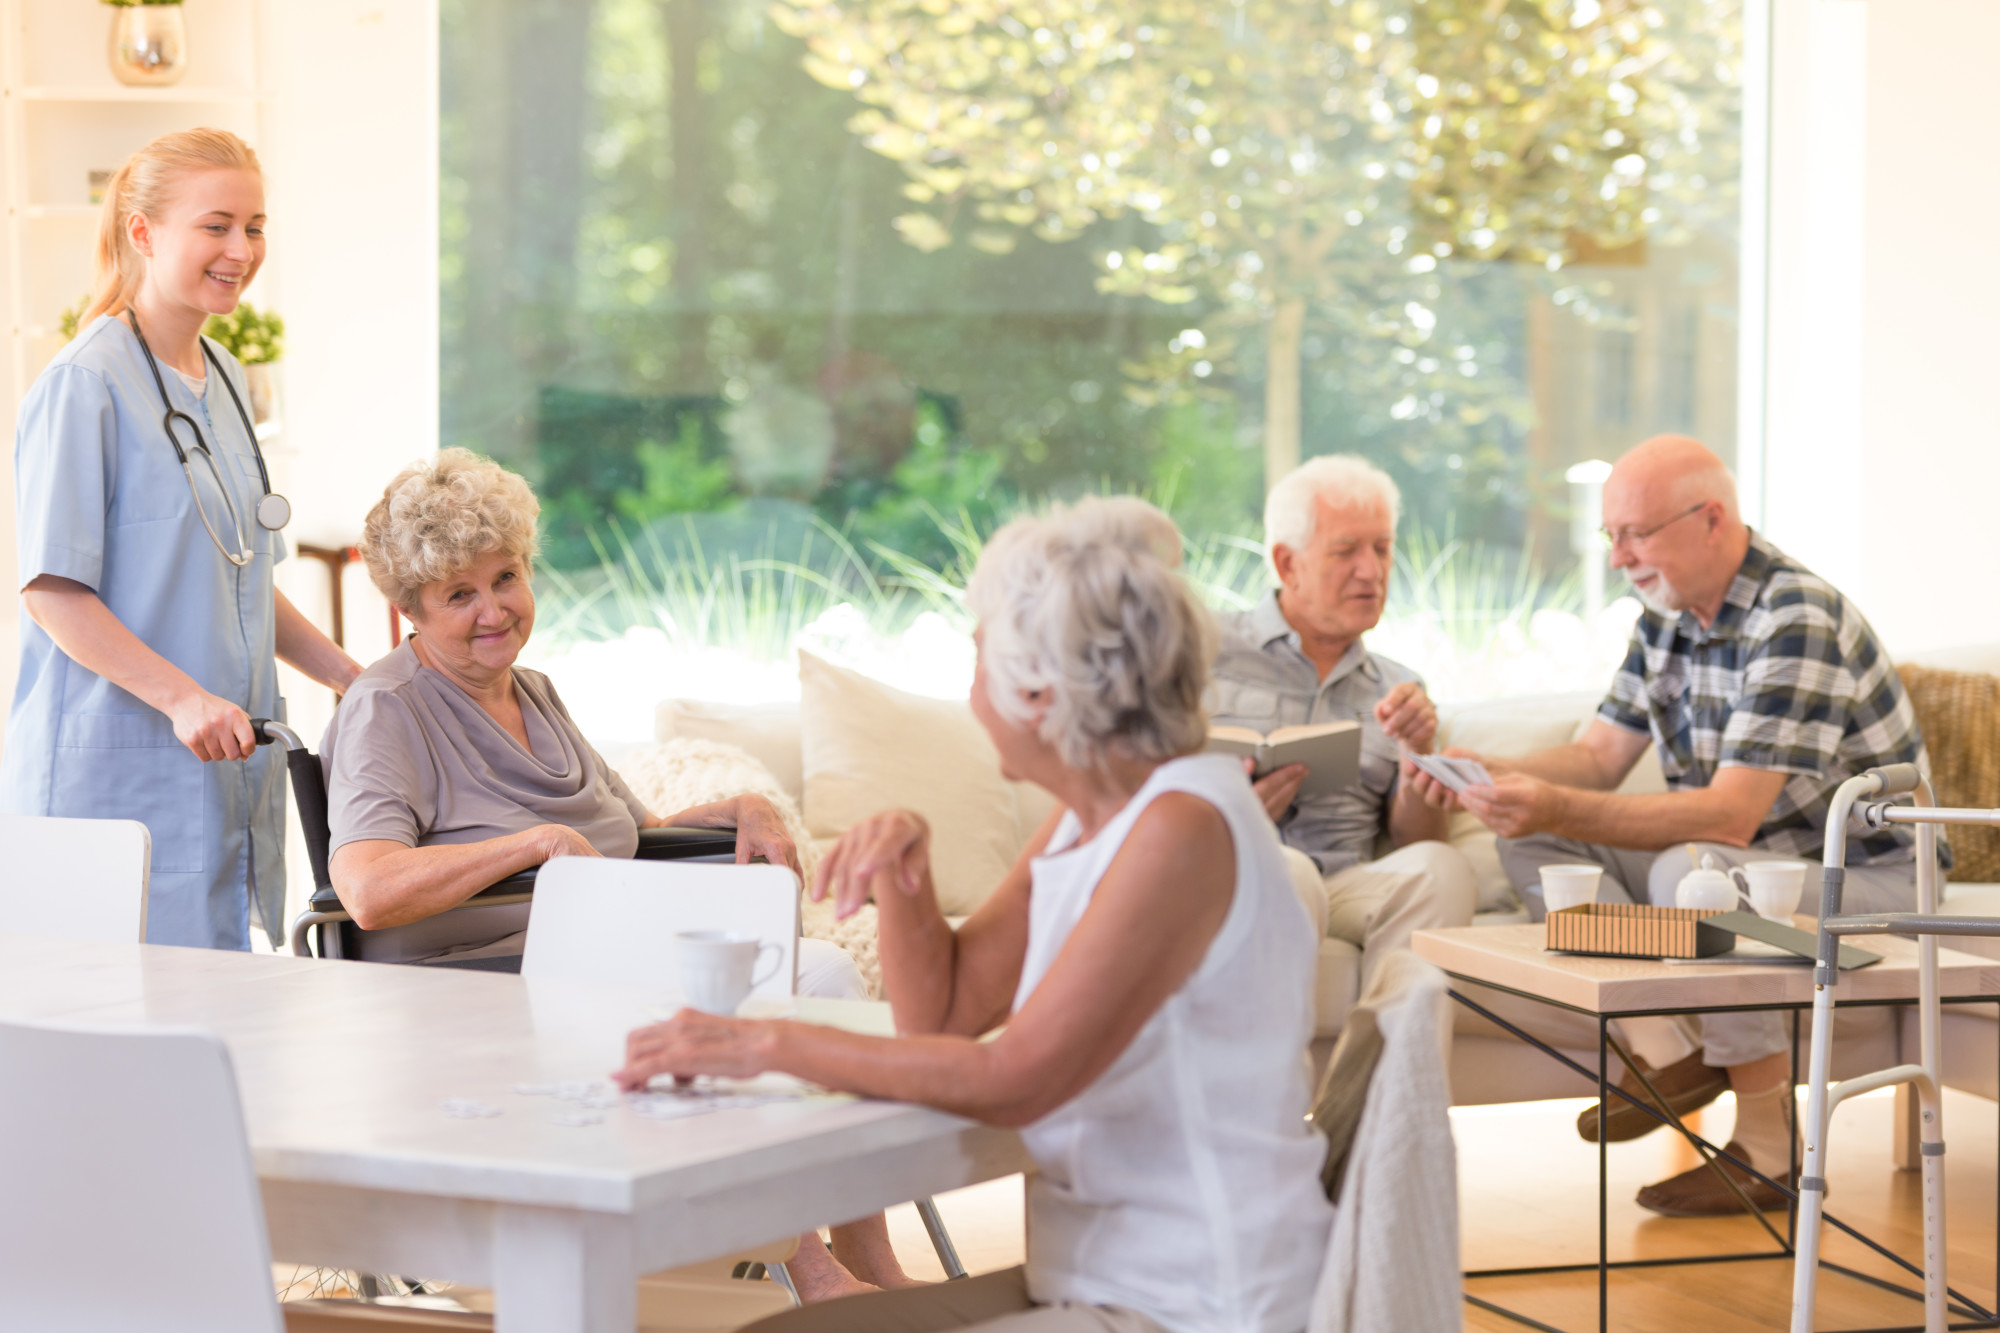 5 Key Things to Look for in a Senior Independent Living Facility